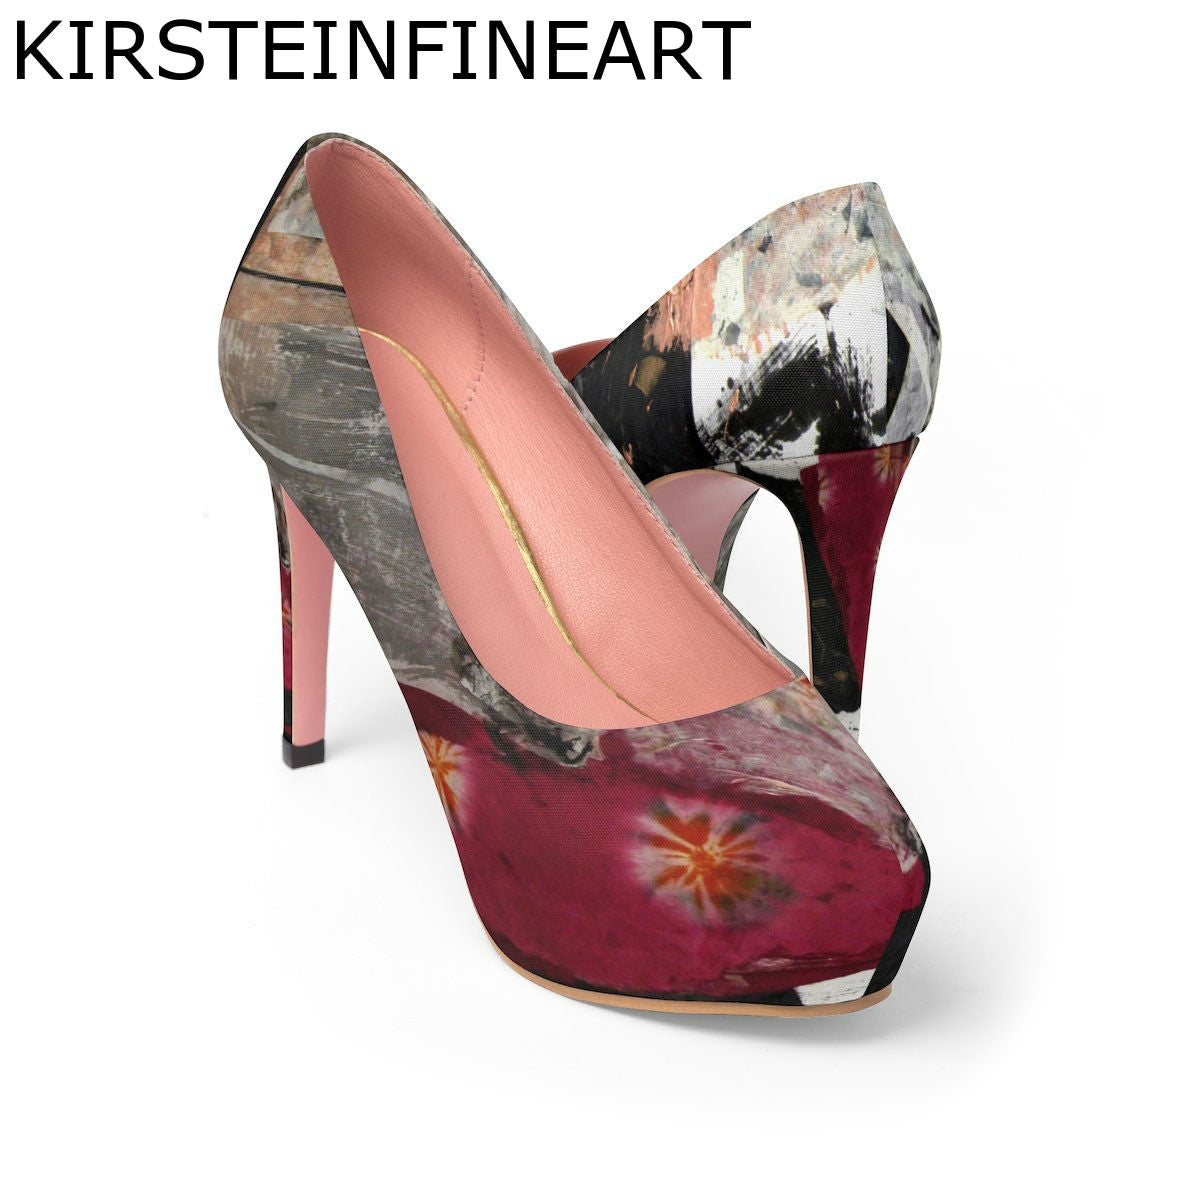 Evening Splendor Women's Platform Heels Designed by Janis Kirstein - Kirsteinfineart